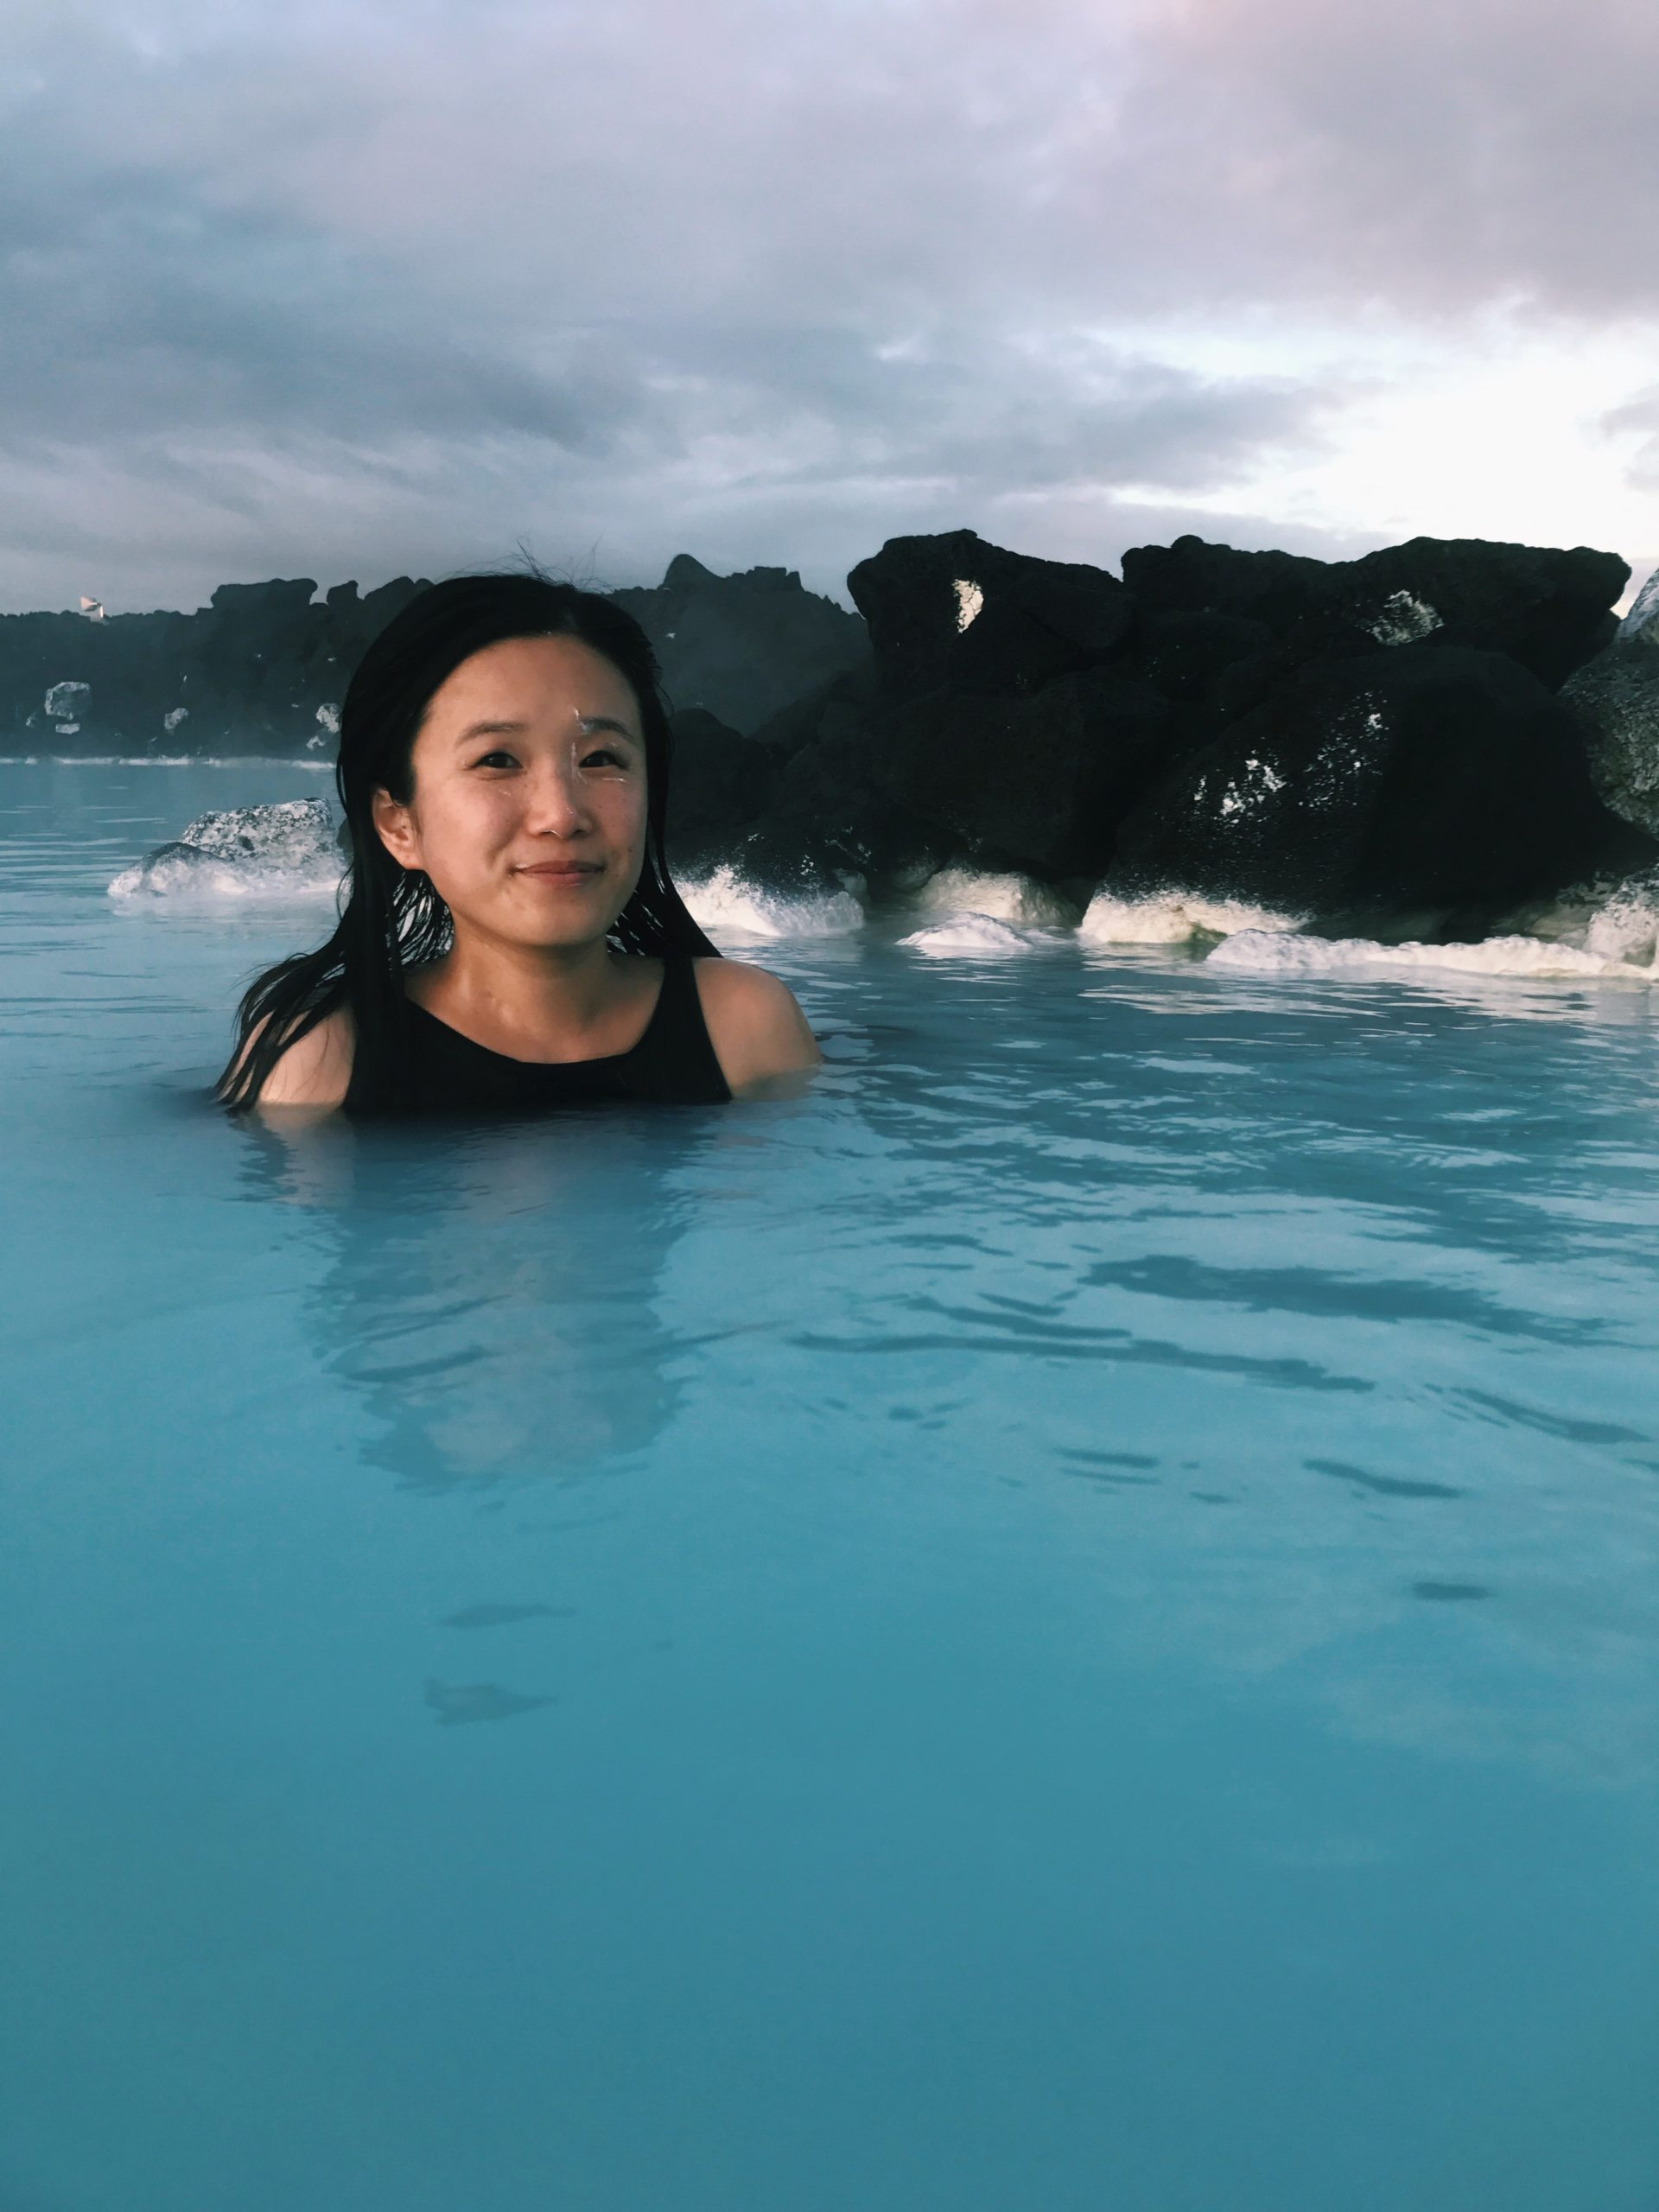 Photo: Relaxing at Blue Lagoon  - Travel to Iceland